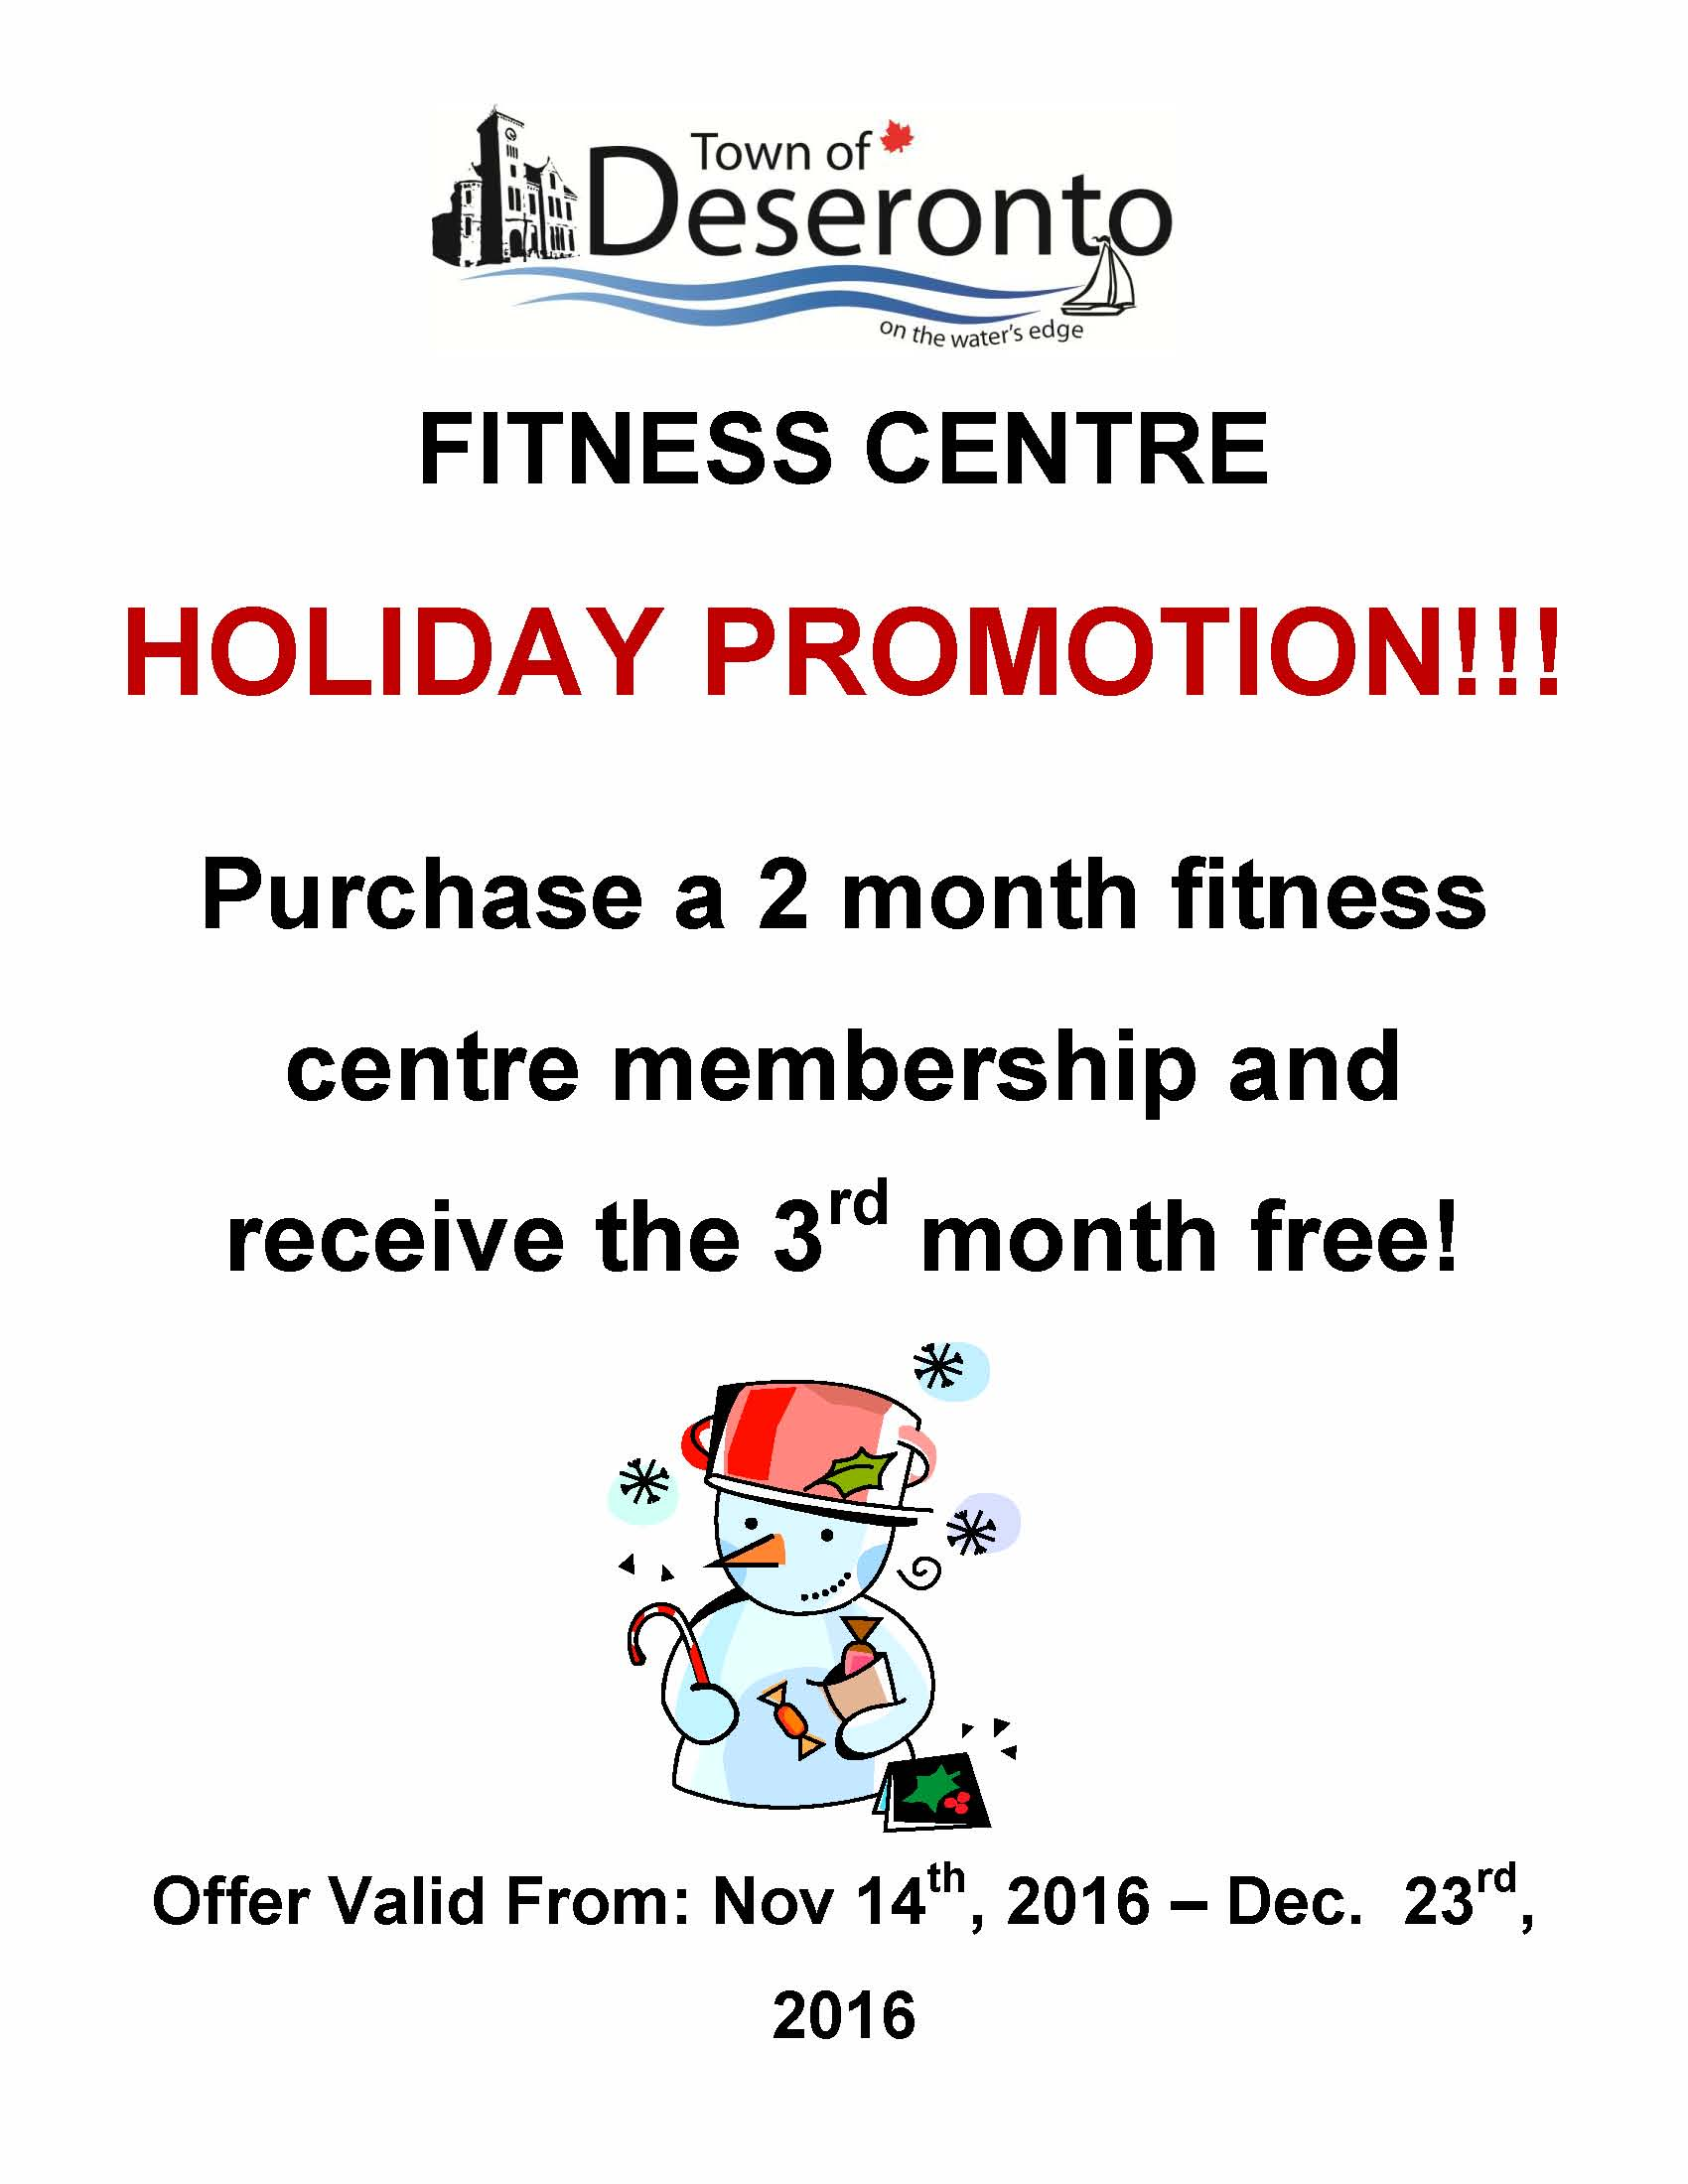 Fitness Centre Holiday Promo 2016